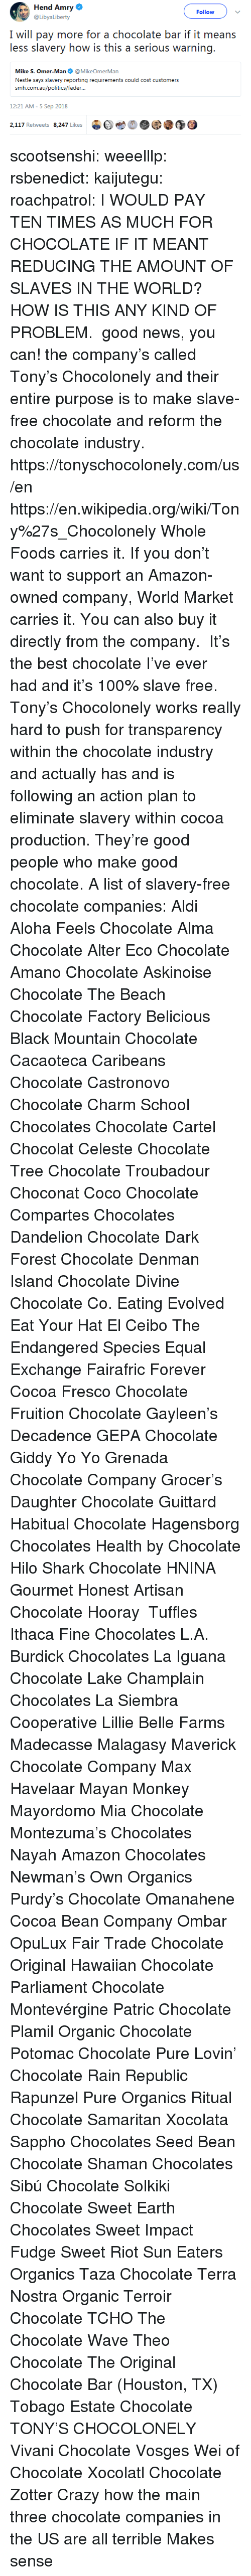 action plan: Hend Amry  @LibyaLiberty  Follow  I will pay more for a chocolate bar if it means  less slavery how is this a serious warning.  Mike S. Omer-Man@MikeOmerMan  Nestle says slavery reporting requirements could cost customers  srmi.exiiauafoliiicxi/icxlkir...  12:21 AM-5 Sep 2018  2,117 Retweets 8.247 Likes  bet  @③ scootsenshi:  weeelllp:  rsbenedict:  kaijutegu:  roachpatrol: I WOULD PAY TEN TIMES AS MUCH FOR CHOCOLATE IF IT MEANT REDUCING THE AMOUNT OF SLAVES IN THE WORLD? HOW IS THIS ANY KIND OF PROBLEM.  good news, you can! the company's called Tony's Chocolonely and their entire purpose is to make slave-free chocolate and reform the chocolate industry. https://tonyschocolonely.com/us/en https://en.wikipedia.org/wiki/Tony%27s_Chocolonely Whole Foods carries it. If you don't want to support an Amazon-owned company, World Market carries it. You can also buy it directly from the company.  It's the best chocolate I've ever had and it's 100% slave free. Tony's Chocolonely works really hard to push for transparency within the chocolate industry and actually has and is following an action plan to eliminate slavery within cocoa production. They're good people who make good chocolate.  A list of slavery-free chocolate companies:  Aldi  Aloha Feels Chocolate  Alma Chocolate  Alter Eco Chocolate  Amano Chocolate  Askinoise Chocolate  The Beach Chocolate Factory  Belicious  Black Mountain Chocolate  Cacaoteca  Caribeans Chocolate  Castronovo Chocolate  Charm School Chocolates  Chocolate Cartel  Chocolat Celeste  Chocolate Tree  Chocolate Troubadour  Choconat  Coco Chocolate  Compartes Chocolates  Dandelion Chocolate  Dark Forest Chocolate  Denman Island Chocolate  Divine Chocolate Co.  Eating Evolved  Eat Your Hat  El Ceibo  The Endangered Species  Equal Exchange  Fairafric  Forever Cocoa  Fresco Chocolate  Fruition Chocolate  Gayleen's Decadence  GEPA Chocolate  Giddy Yo Yo  Grenada Chocolate Company  Grocer's Daughter Chocolate  Guittard  Habitual Chocolate  Hagensborg Chocolates  Health by Chocolate  Hilo Shark Chocolate  HNINA Gourmet  Honest Artisan Chocolate  Hooray  Tuffles Ithaca Fine Chocolates  L.A. Burdick Chocolates  La Iguana Chocolate  Lake Champlain Chocolates  La Siembra Cooperative  Lillie Belle Farms  Madecasse  Malagasy  Maverick Chocolate Company Max Havelaar  Mayan Monkey  Mayordomo  Mia Chocolate  Montezuma's Chocolates  Nayah Amazon Chocolates  Newman's Own Organics  Purdy's Chocolate  Omanahene Cocoa Bean Company  Ombar  OpuLux Fair Trade Chocolate  Original Hawaiian Chocolate  Parliament Chocolate  Montevérgine  Patric Chocolate  Plamil Organic Chocolate  Potomac Chocolate  Pure Lovin' Chocolate  Rain Republic  Rapunzel Pure Organics  Ritual Chocolate  Samaritan Xocolata  Sappho Chocolates  Seed  Bean Chocolate  Shaman Chocolates  Sibú Chocolate  Solkiki Chocolate  Sweet Earth Chocolates  Sweet Impact Fudge  Sweet Riot  Sun Eaters Organics  Taza Chocolate  Terra Nostra Organic  Terroir Chocolate  TCHO  The Chocolate Wave  Theo Chocolate  The Original Chocolate Bar (Houston, TX)  Tobago Estate Chocolate  TONY'S CHOCOLONELY  Vivani Chocolate  Vosges  Wei of Chocolate  Xocolatl Chocolate Zotter   Crazy how the main three chocolate companies in the US are all terrible    Makes sense